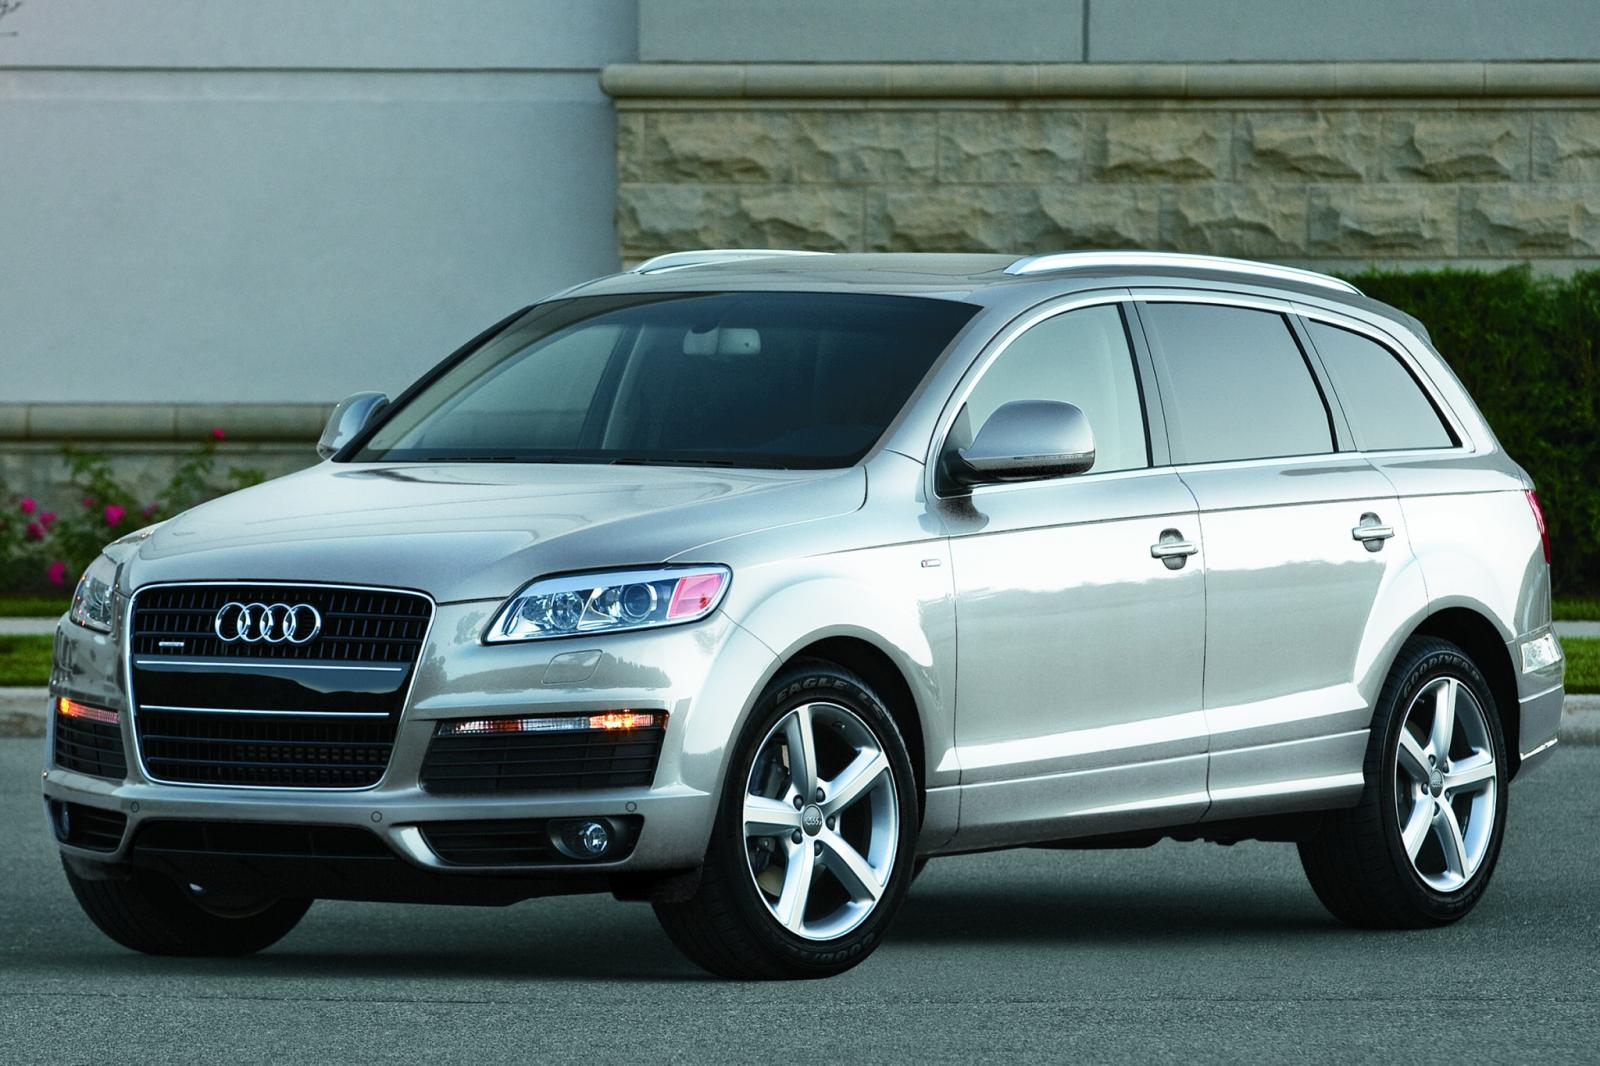 2010 audi q7 information and photos zombiedrive. Black Bedroom Furniture Sets. Home Design Ideas